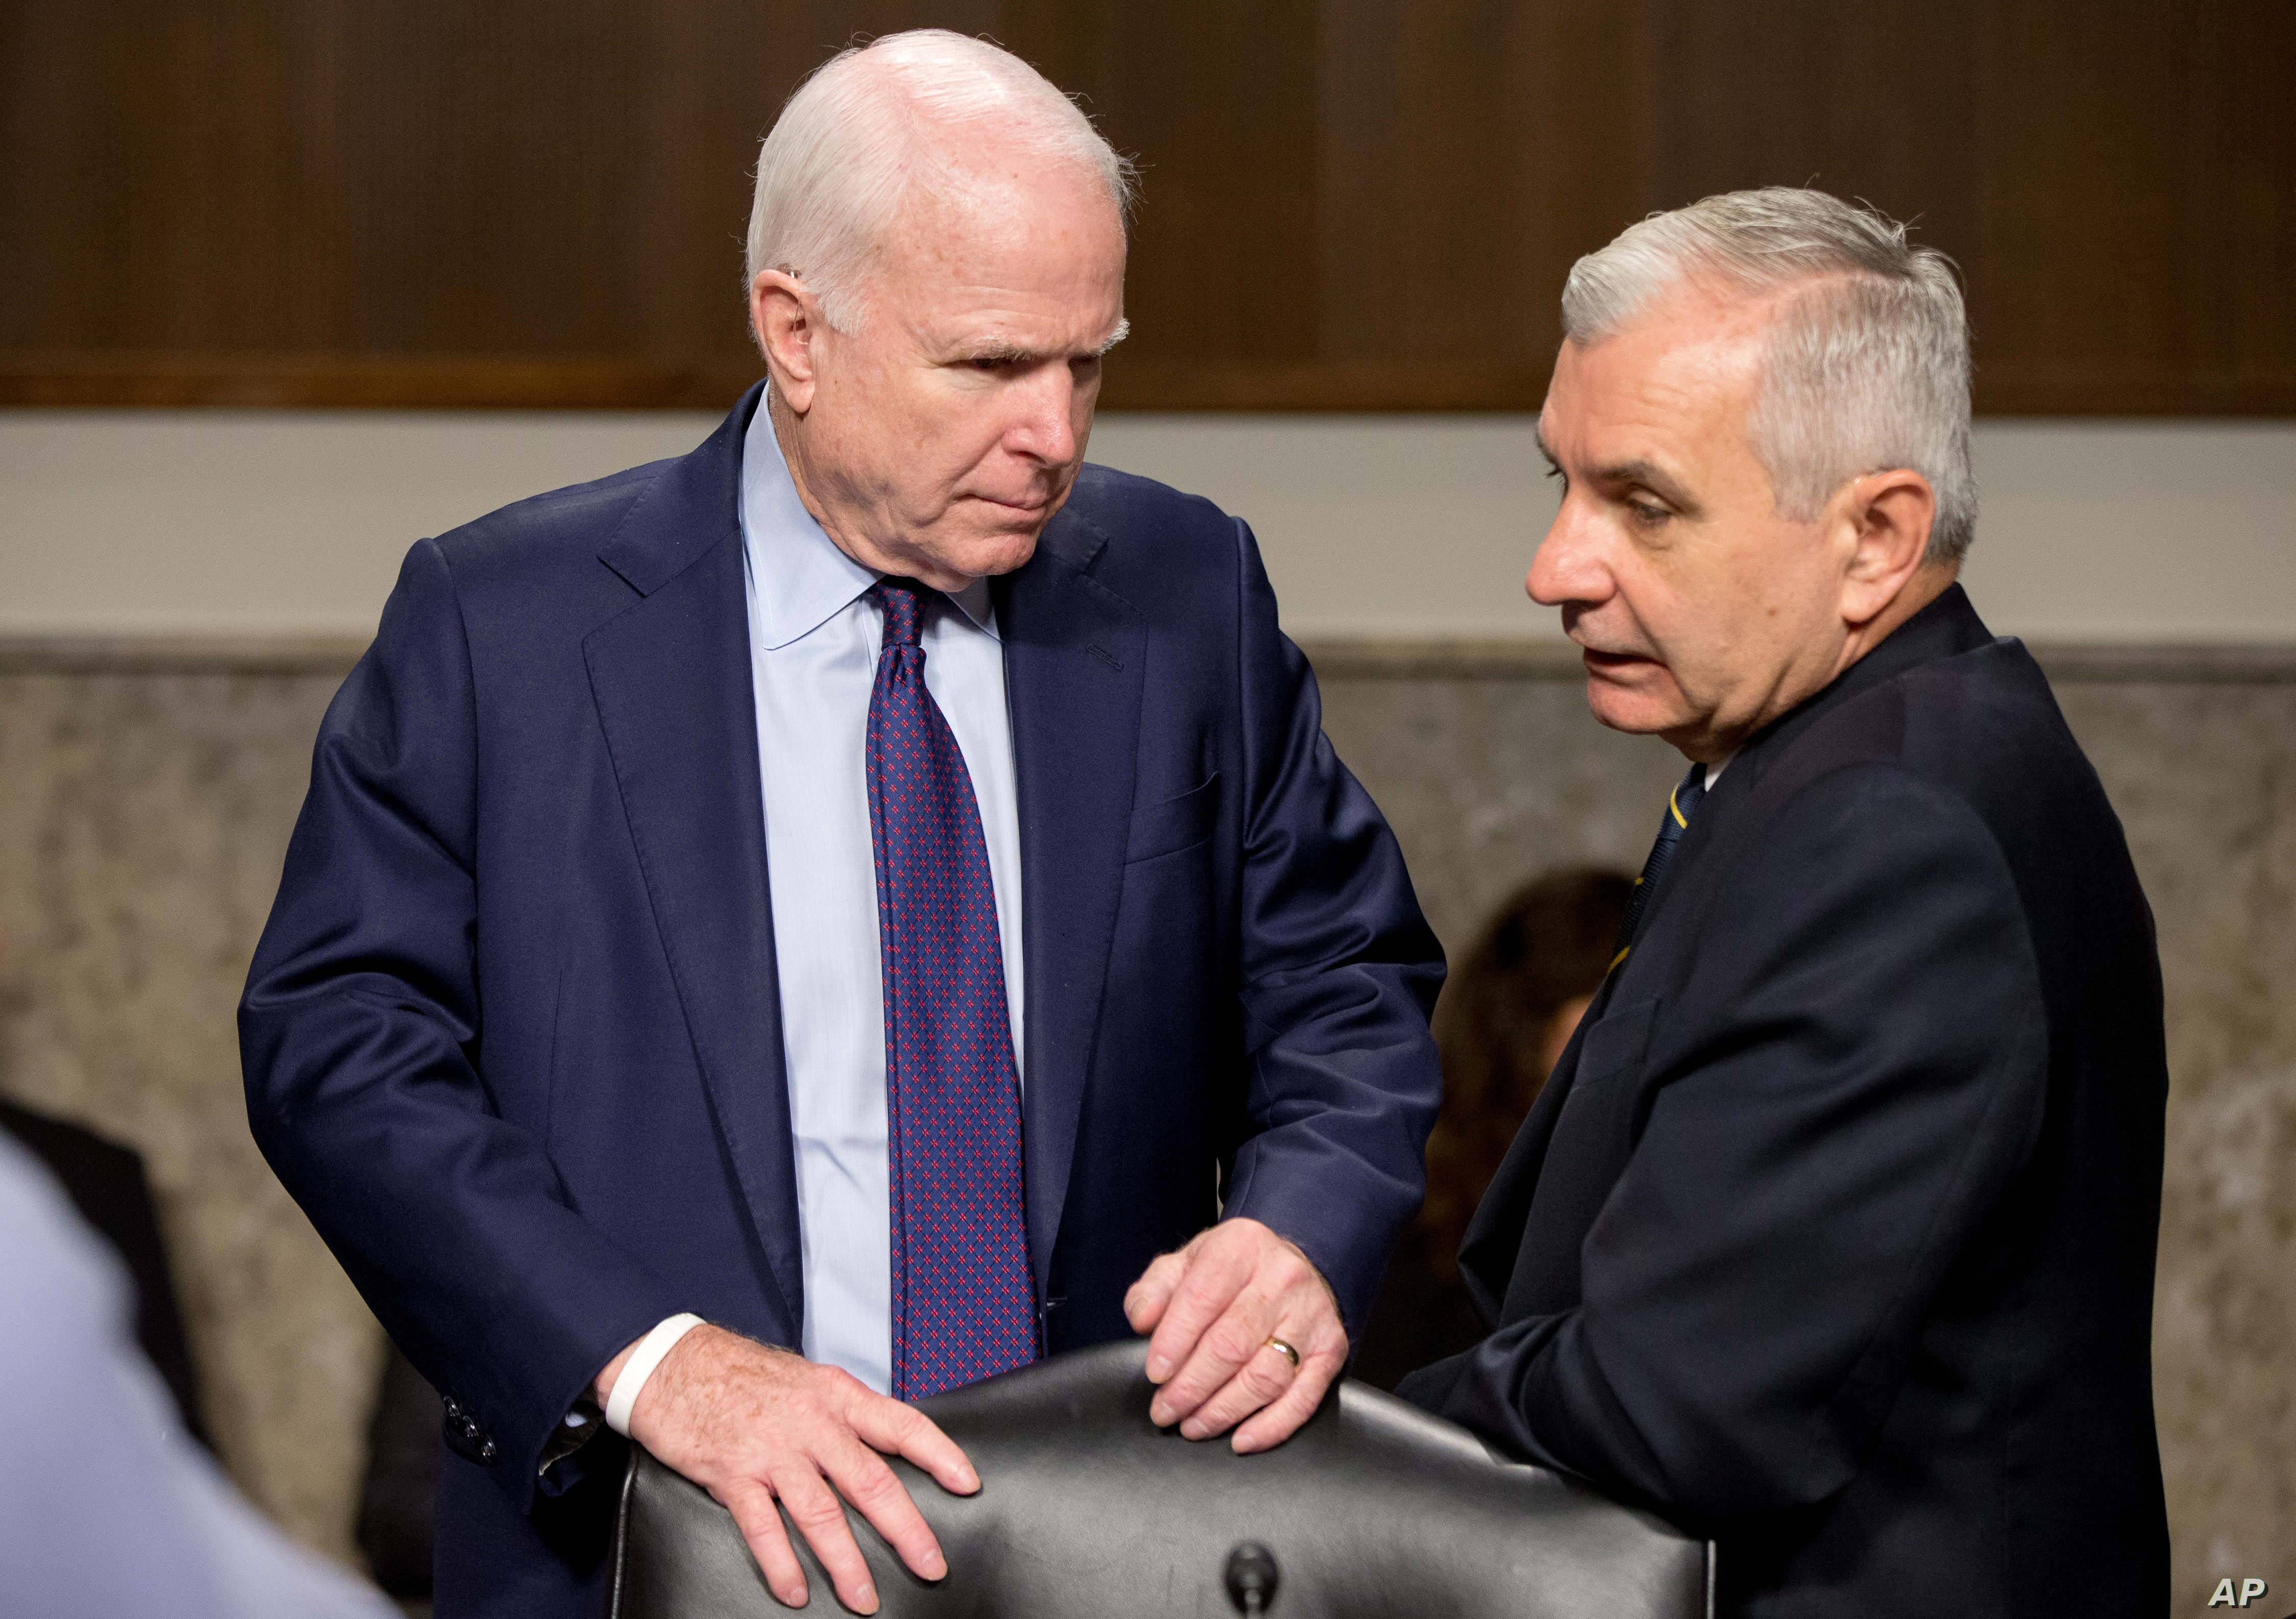 Senate Armed Service Committee Chairman John McCain, R-Ariz., left, talks with committee's ranking member Jack Reed, D-R.I., on Capitol Hill in Washington, July 29, 2015.